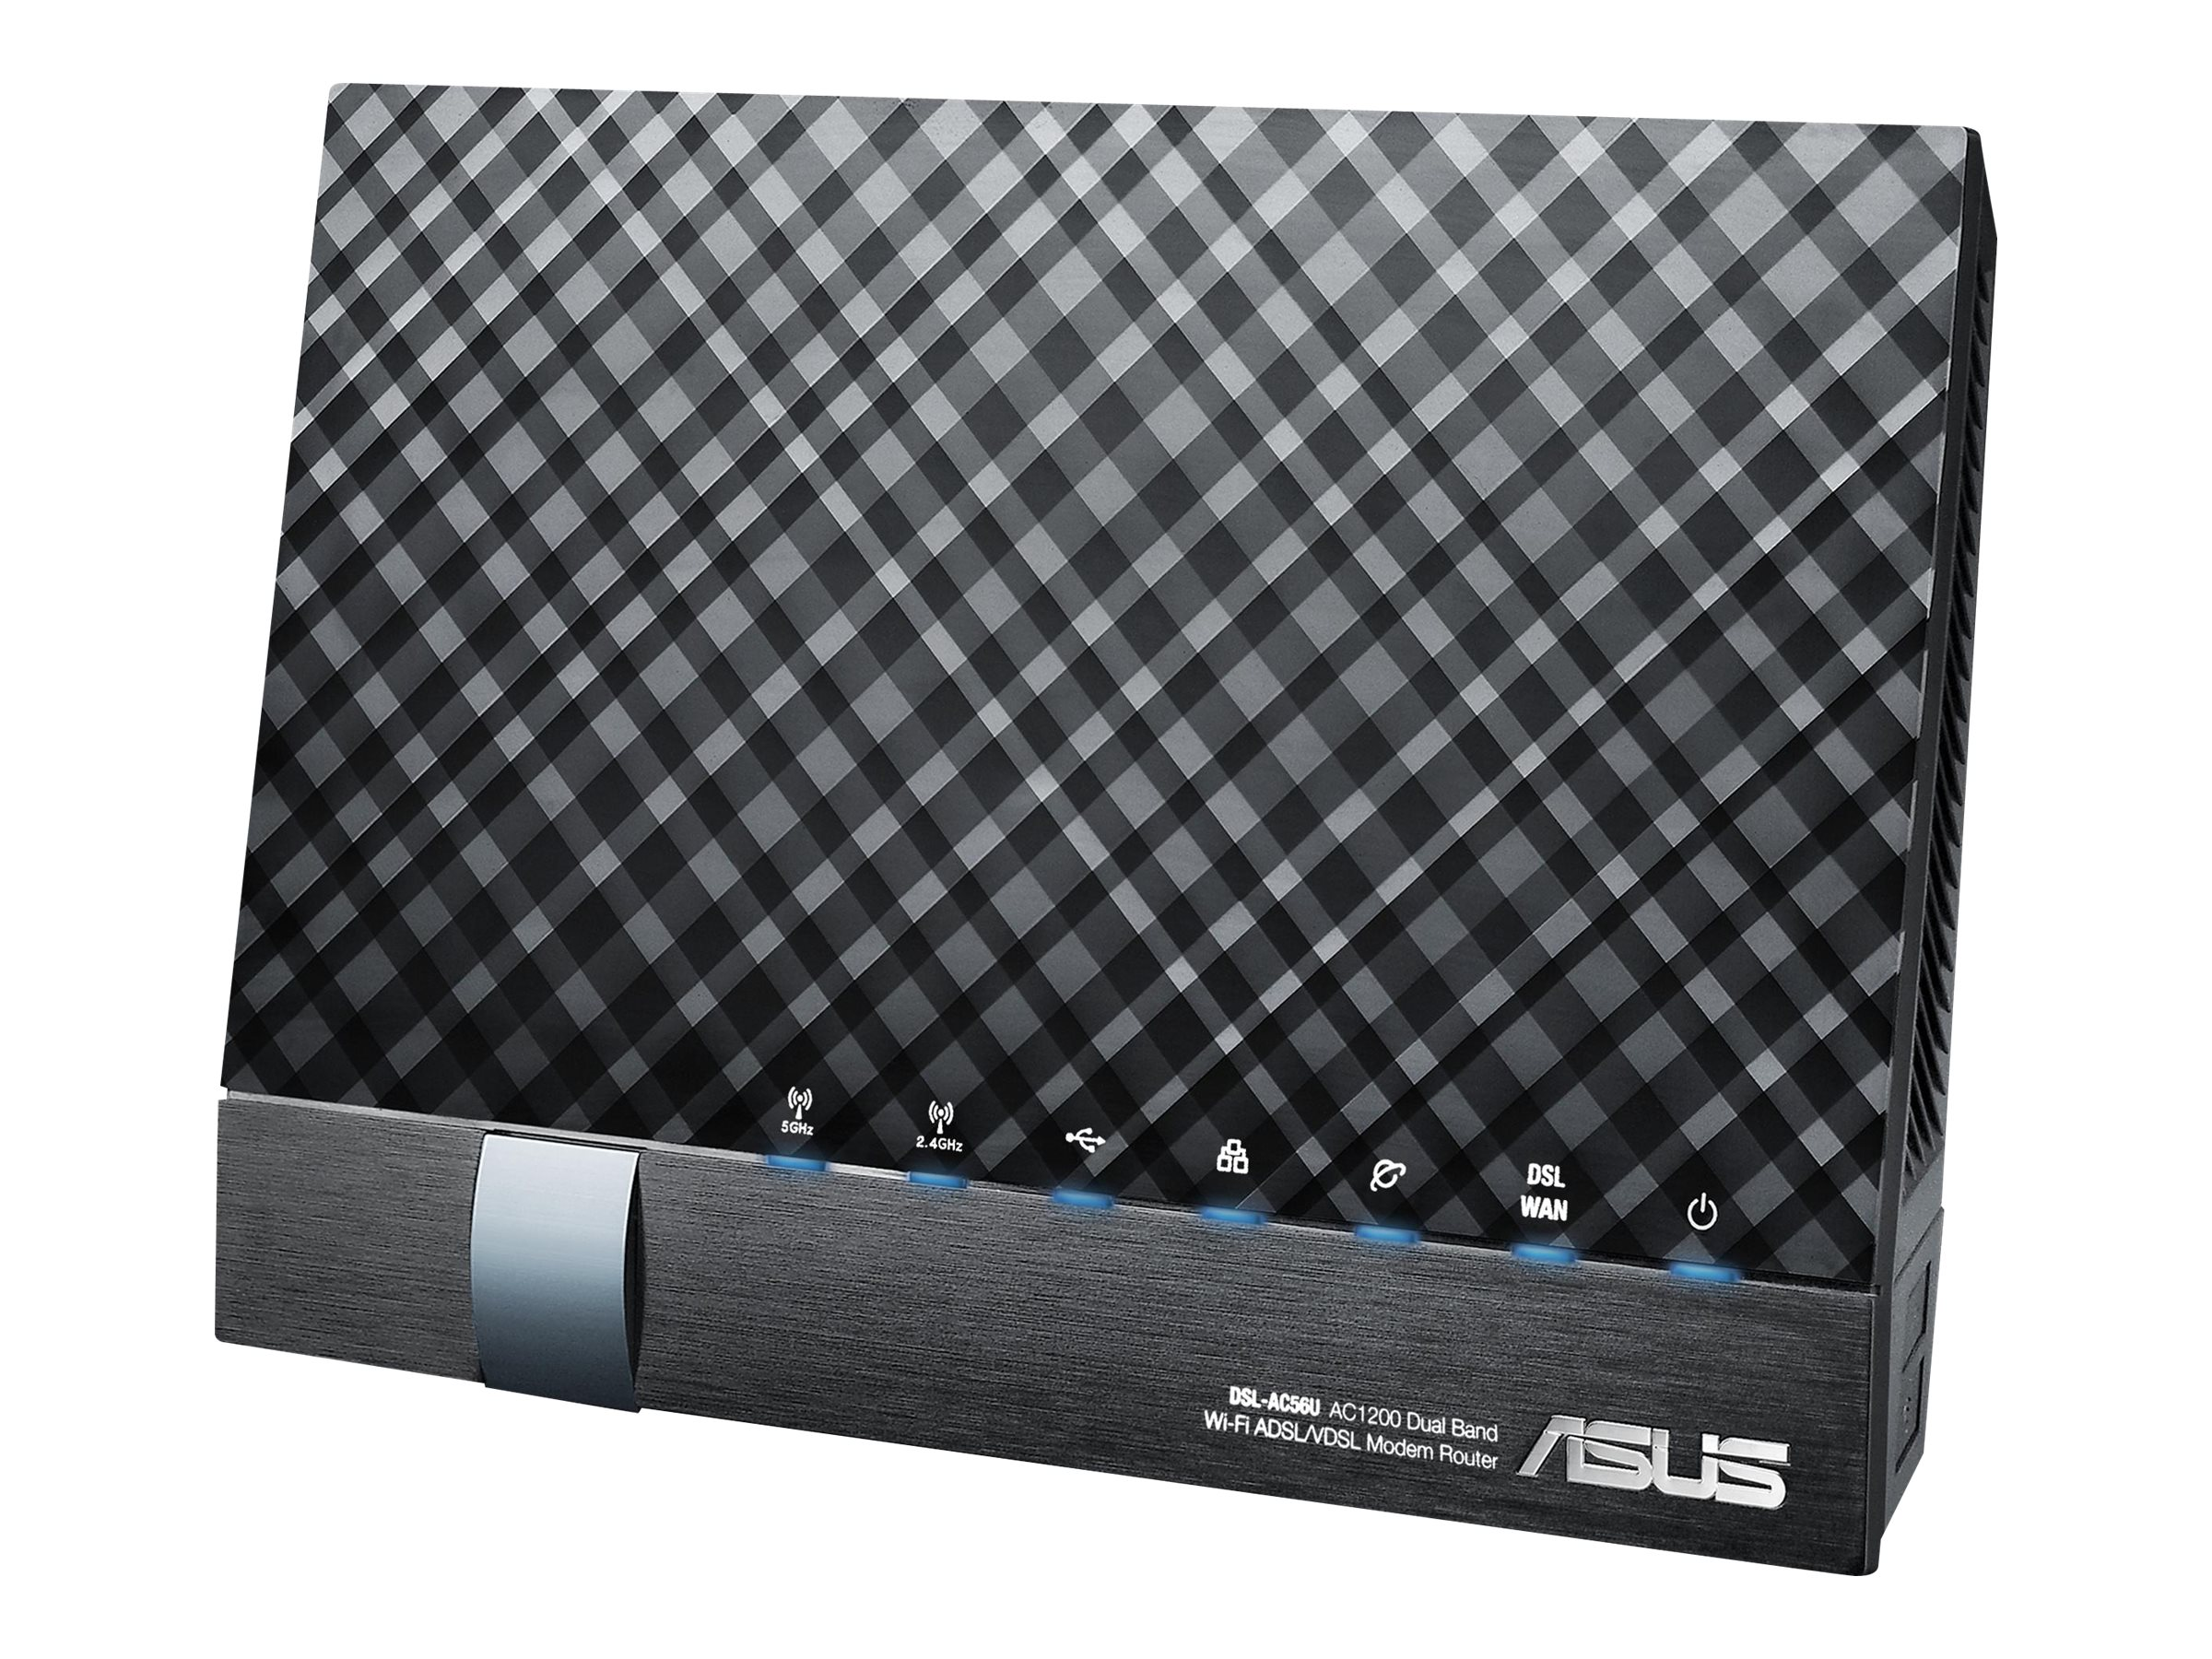 ASUS DSL-AC56U - wireless router - DSL modem - 802.11a/b/g/n/ac - desktop